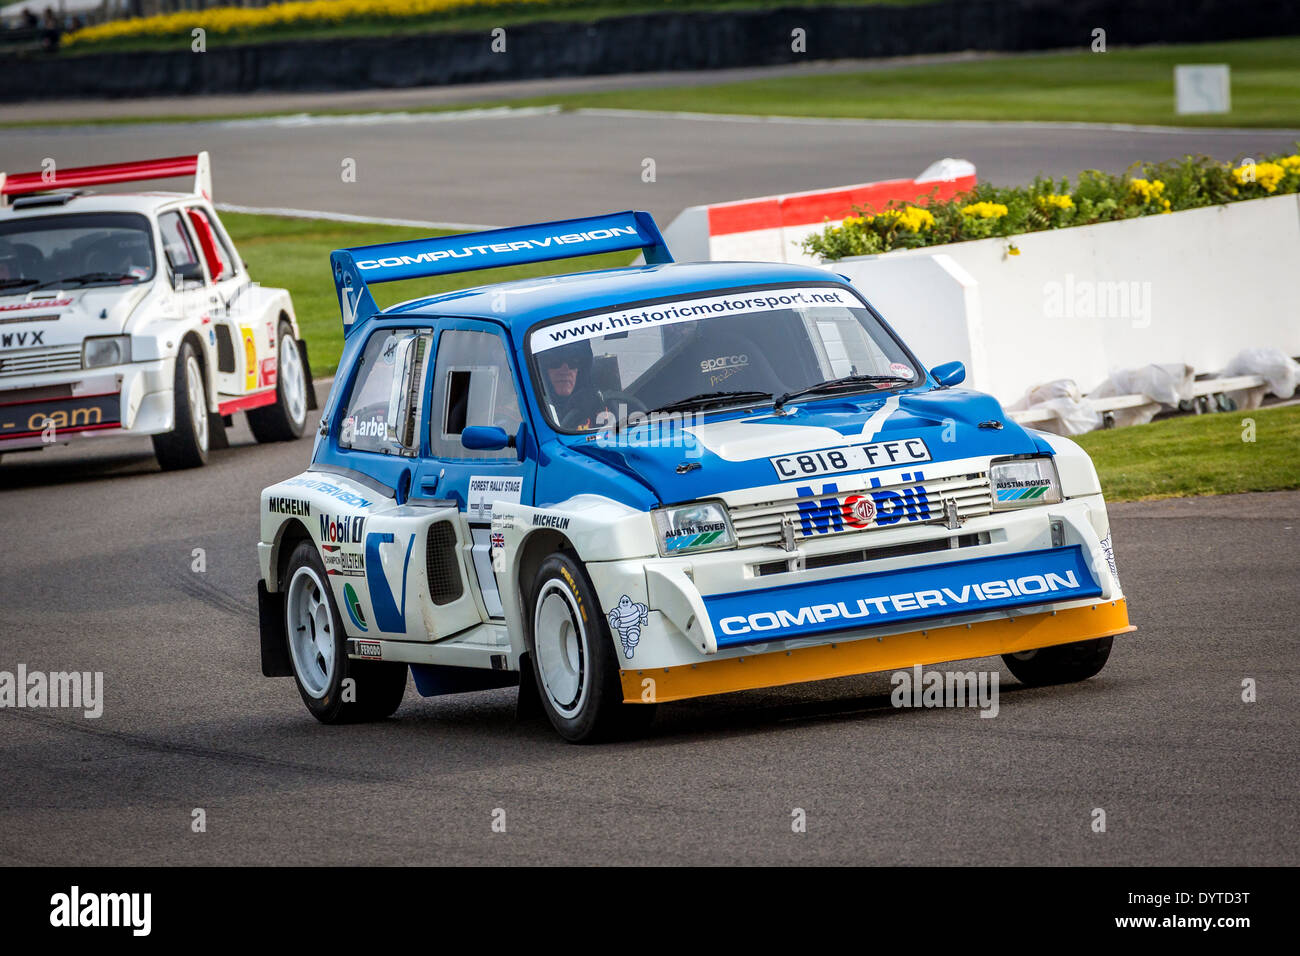 1986 Metro MG 6R4 Group B car with driver Stuart Larby. 72nd Goodwood Members meeting, Sussex, UK. - Stock Image